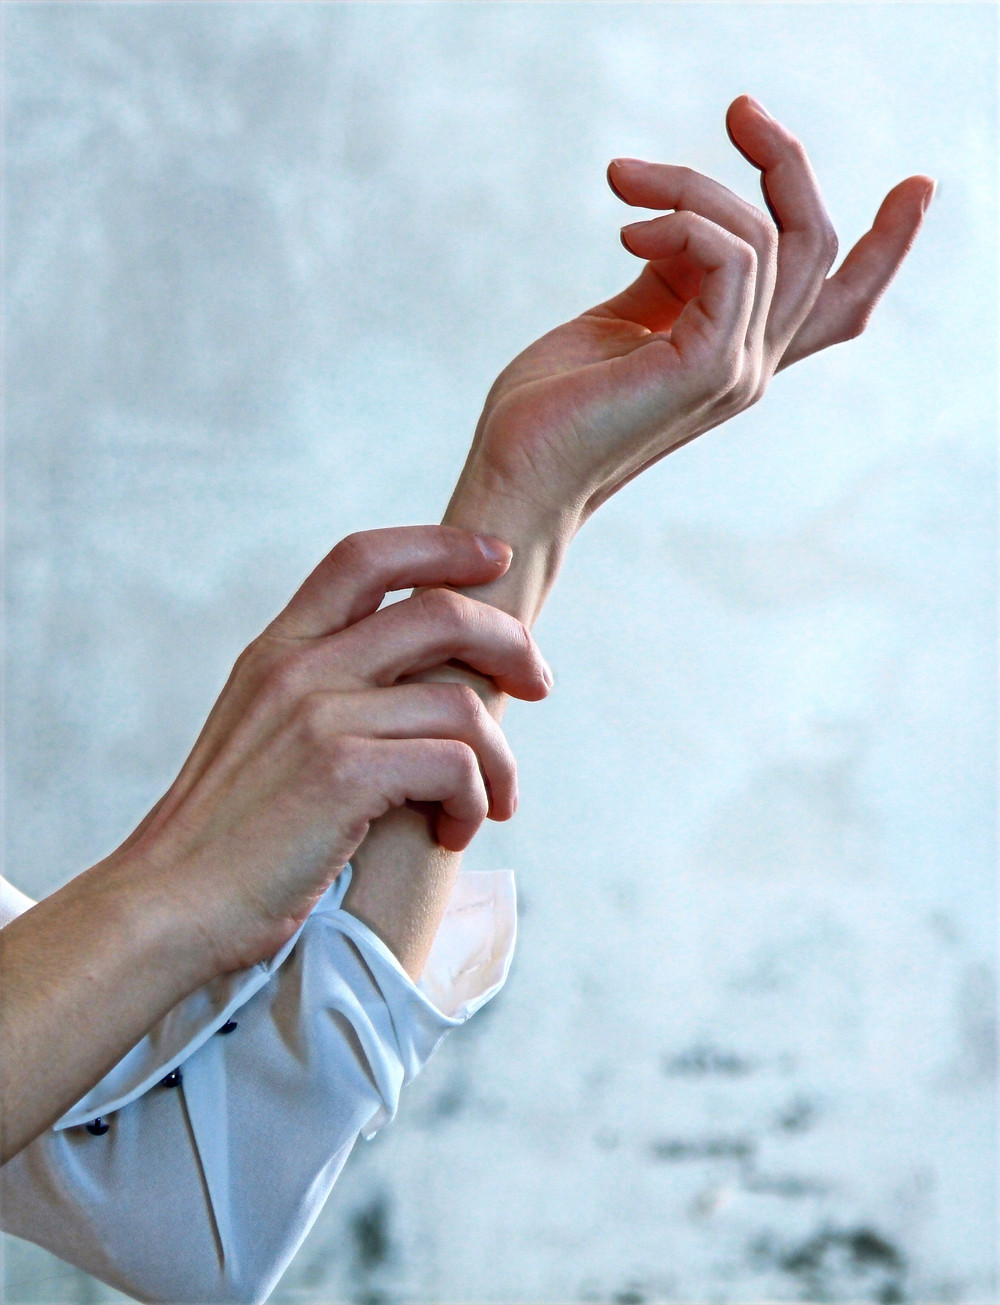 An image of a person conducting a compassionate body scan by gently feeling an area of the wrist.